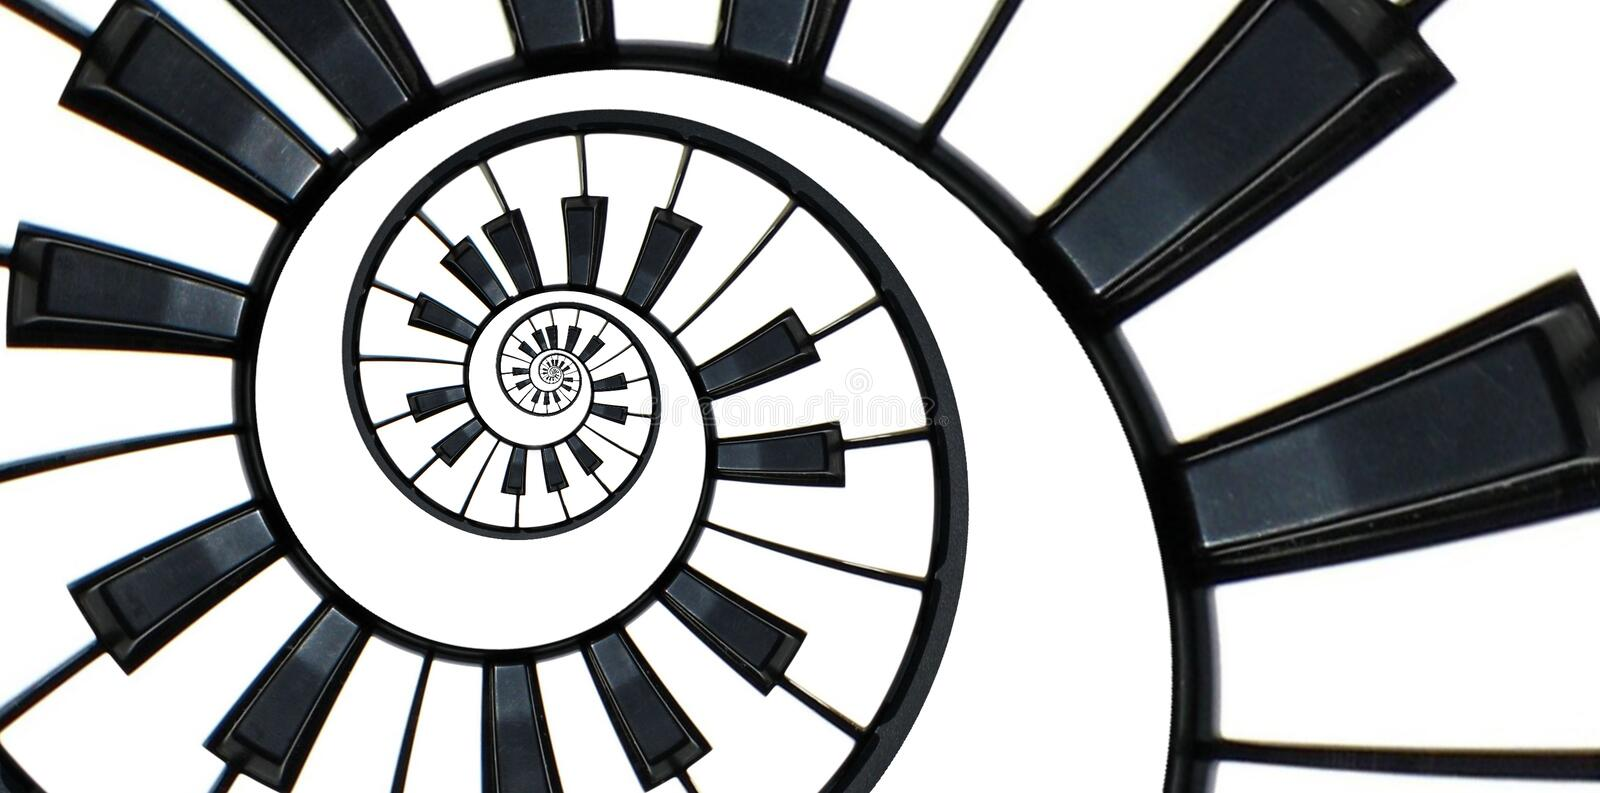 Piano keyboard abstract fractal spiral pattern background. Black and white piano keys round spiral. Spiral stair. Piano concept pa royalty free stock images